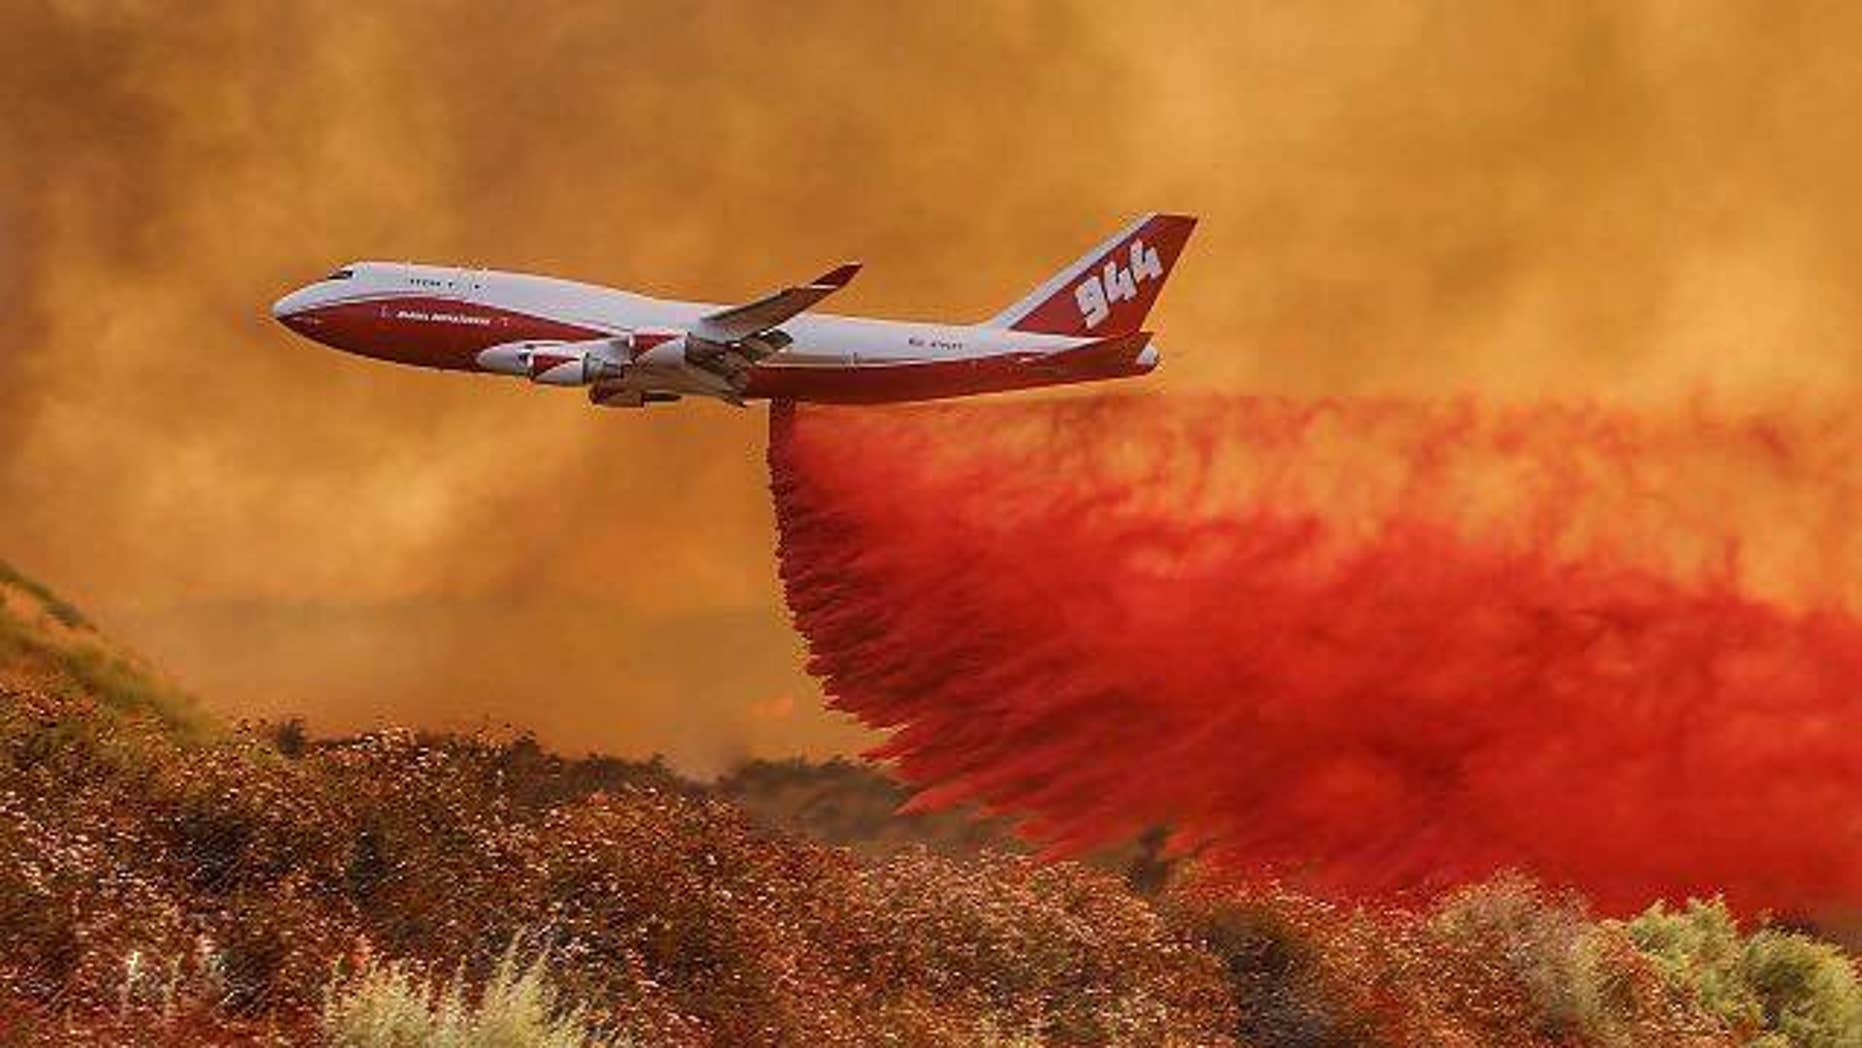 The Global SuperTanker, a mutated Boeing 747-400,can lift 18,000 gallons of glow retardant. (Facebook)